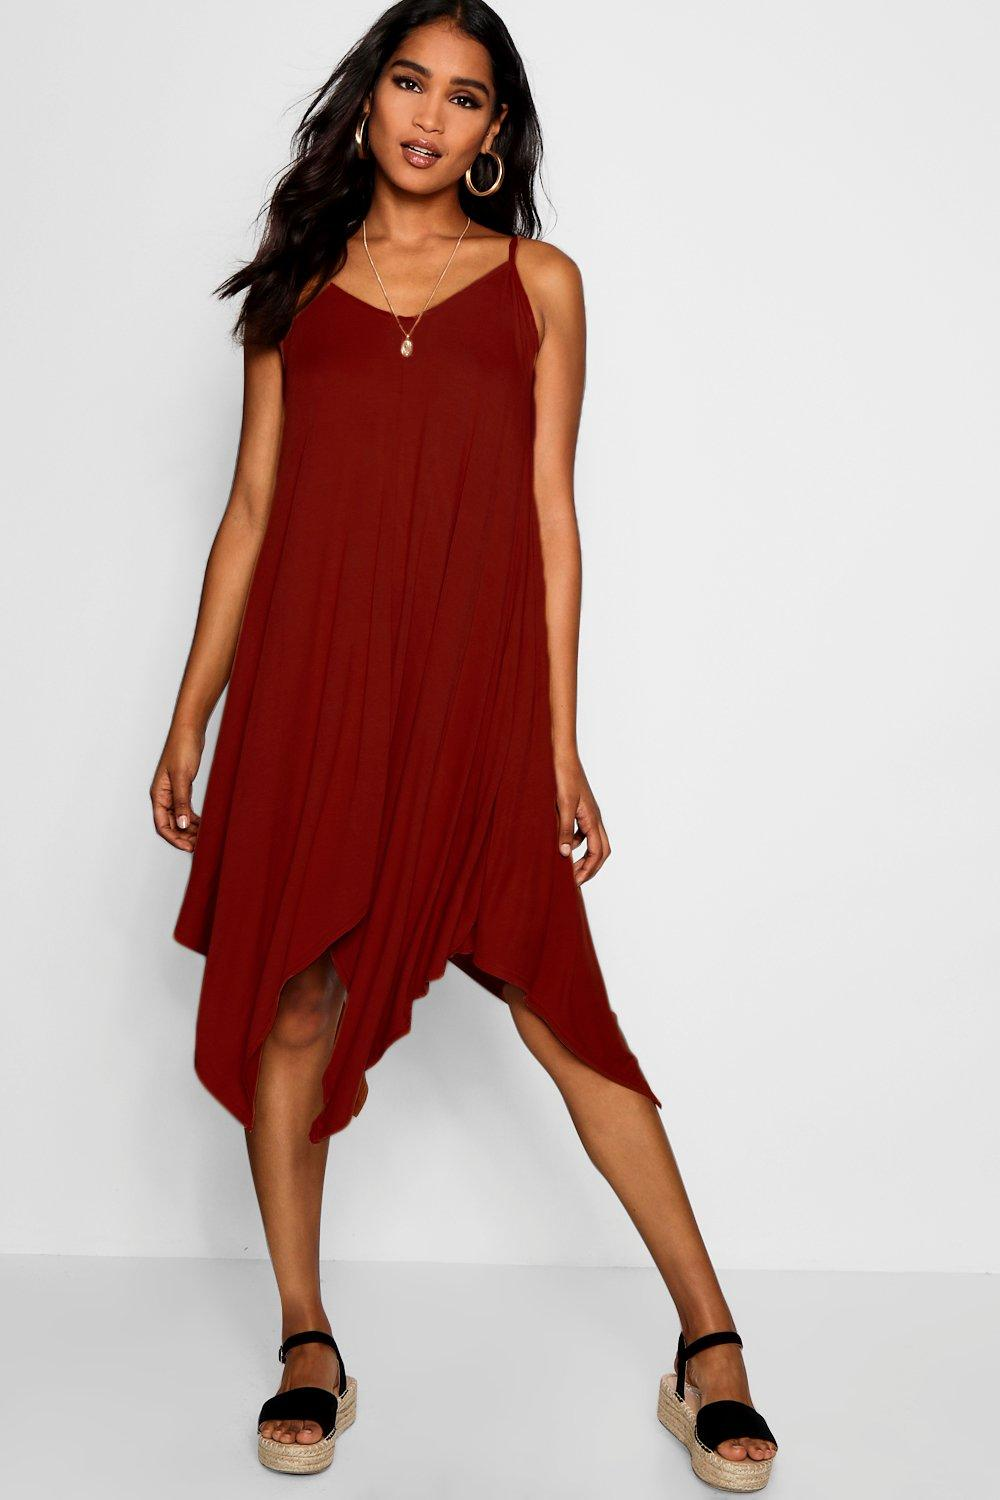 7d07238e0492 Details about Boohoo Womens Asymmetric Hem Strappy Swing Dress